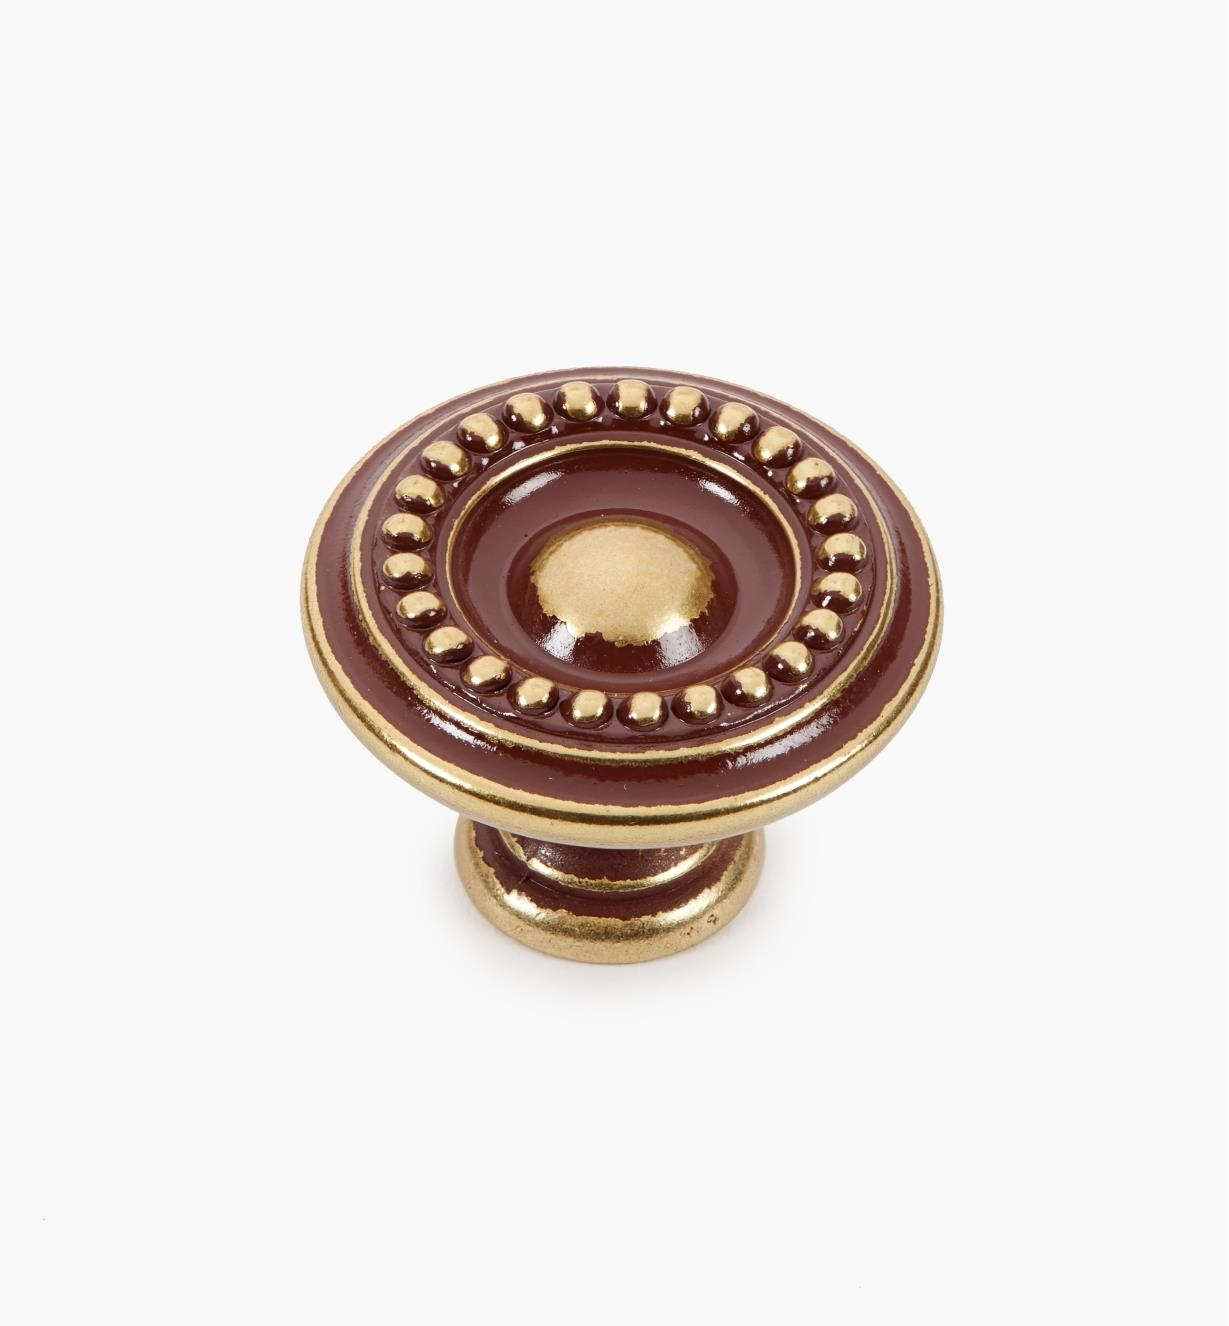 01A7322 - 35mm × 25mm Antique Bronze Pearled Knob